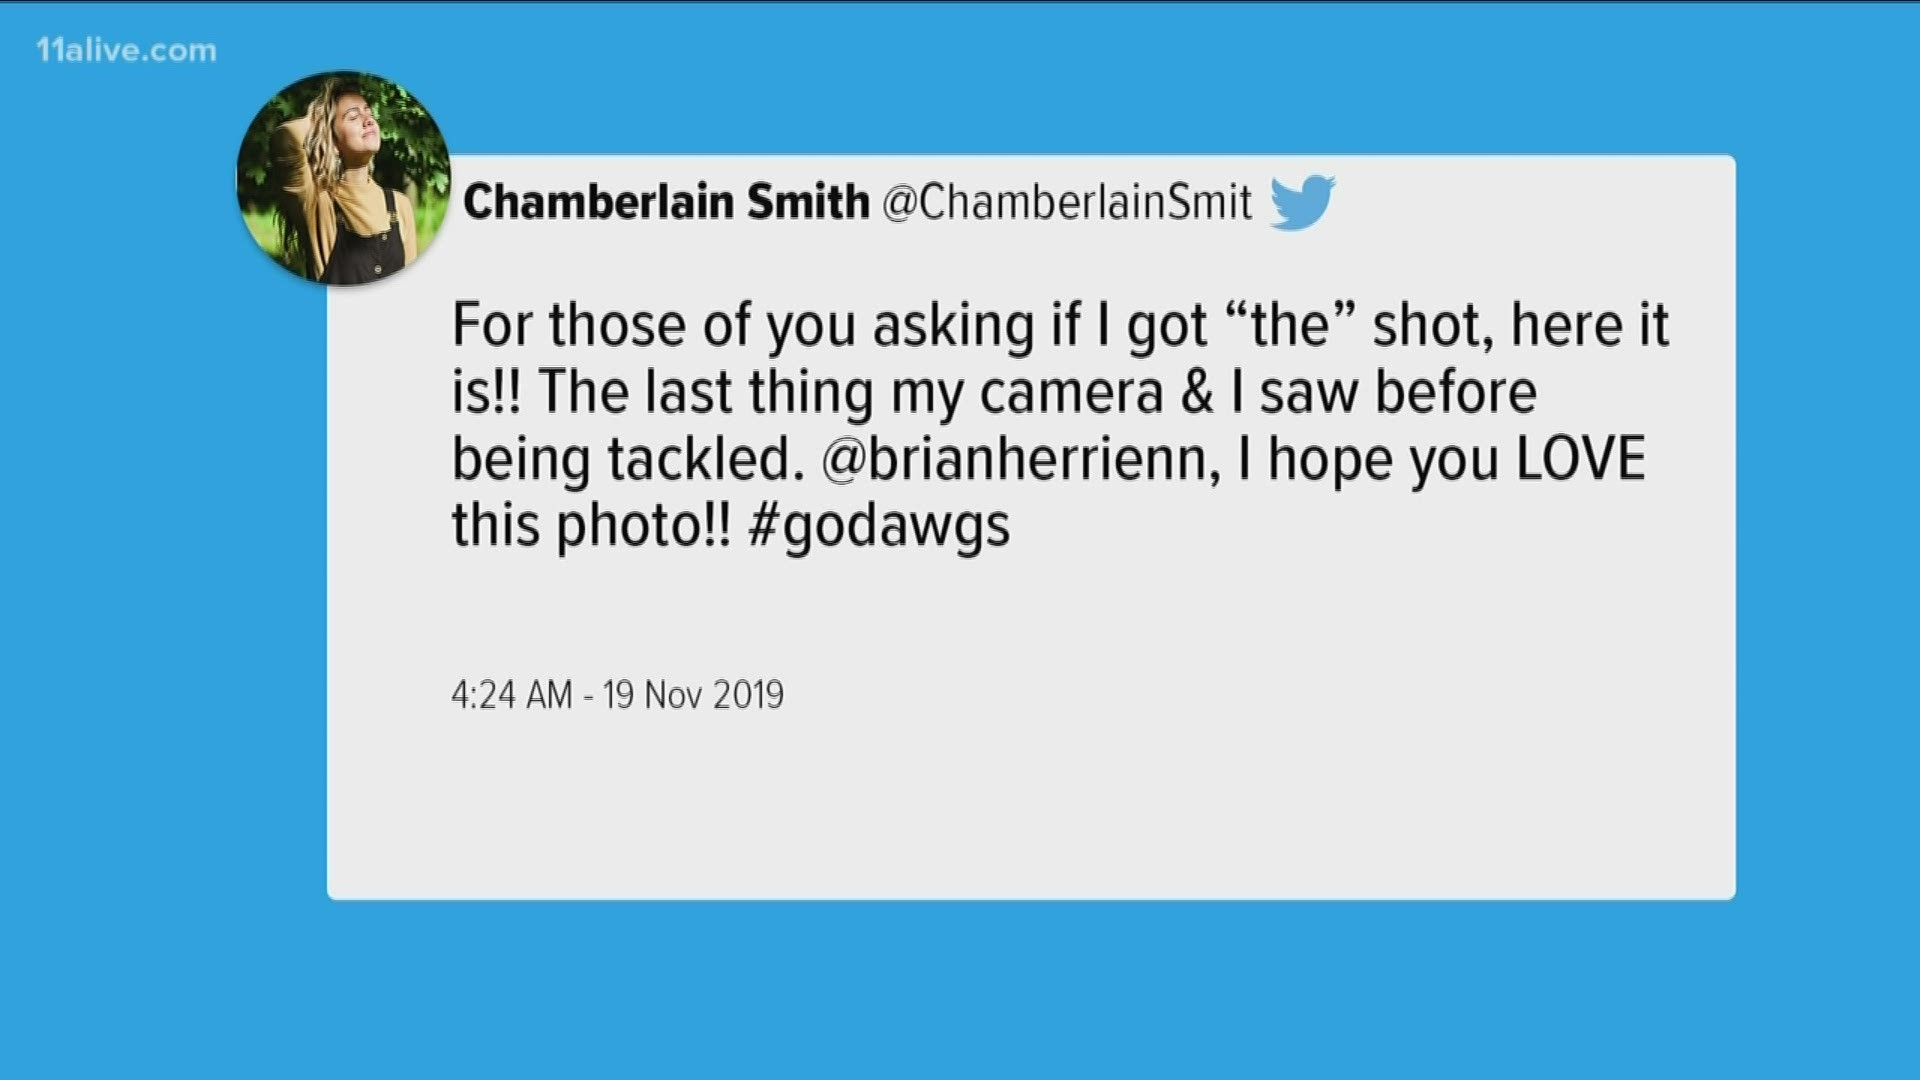 Chamberlain Smith Shares Photograph Of Georgia S Brian Herrien 11alive Com Read the latest news and press releases from chamberlain. the last thing my camera i saw before being tackled uga photo intern shares the shot